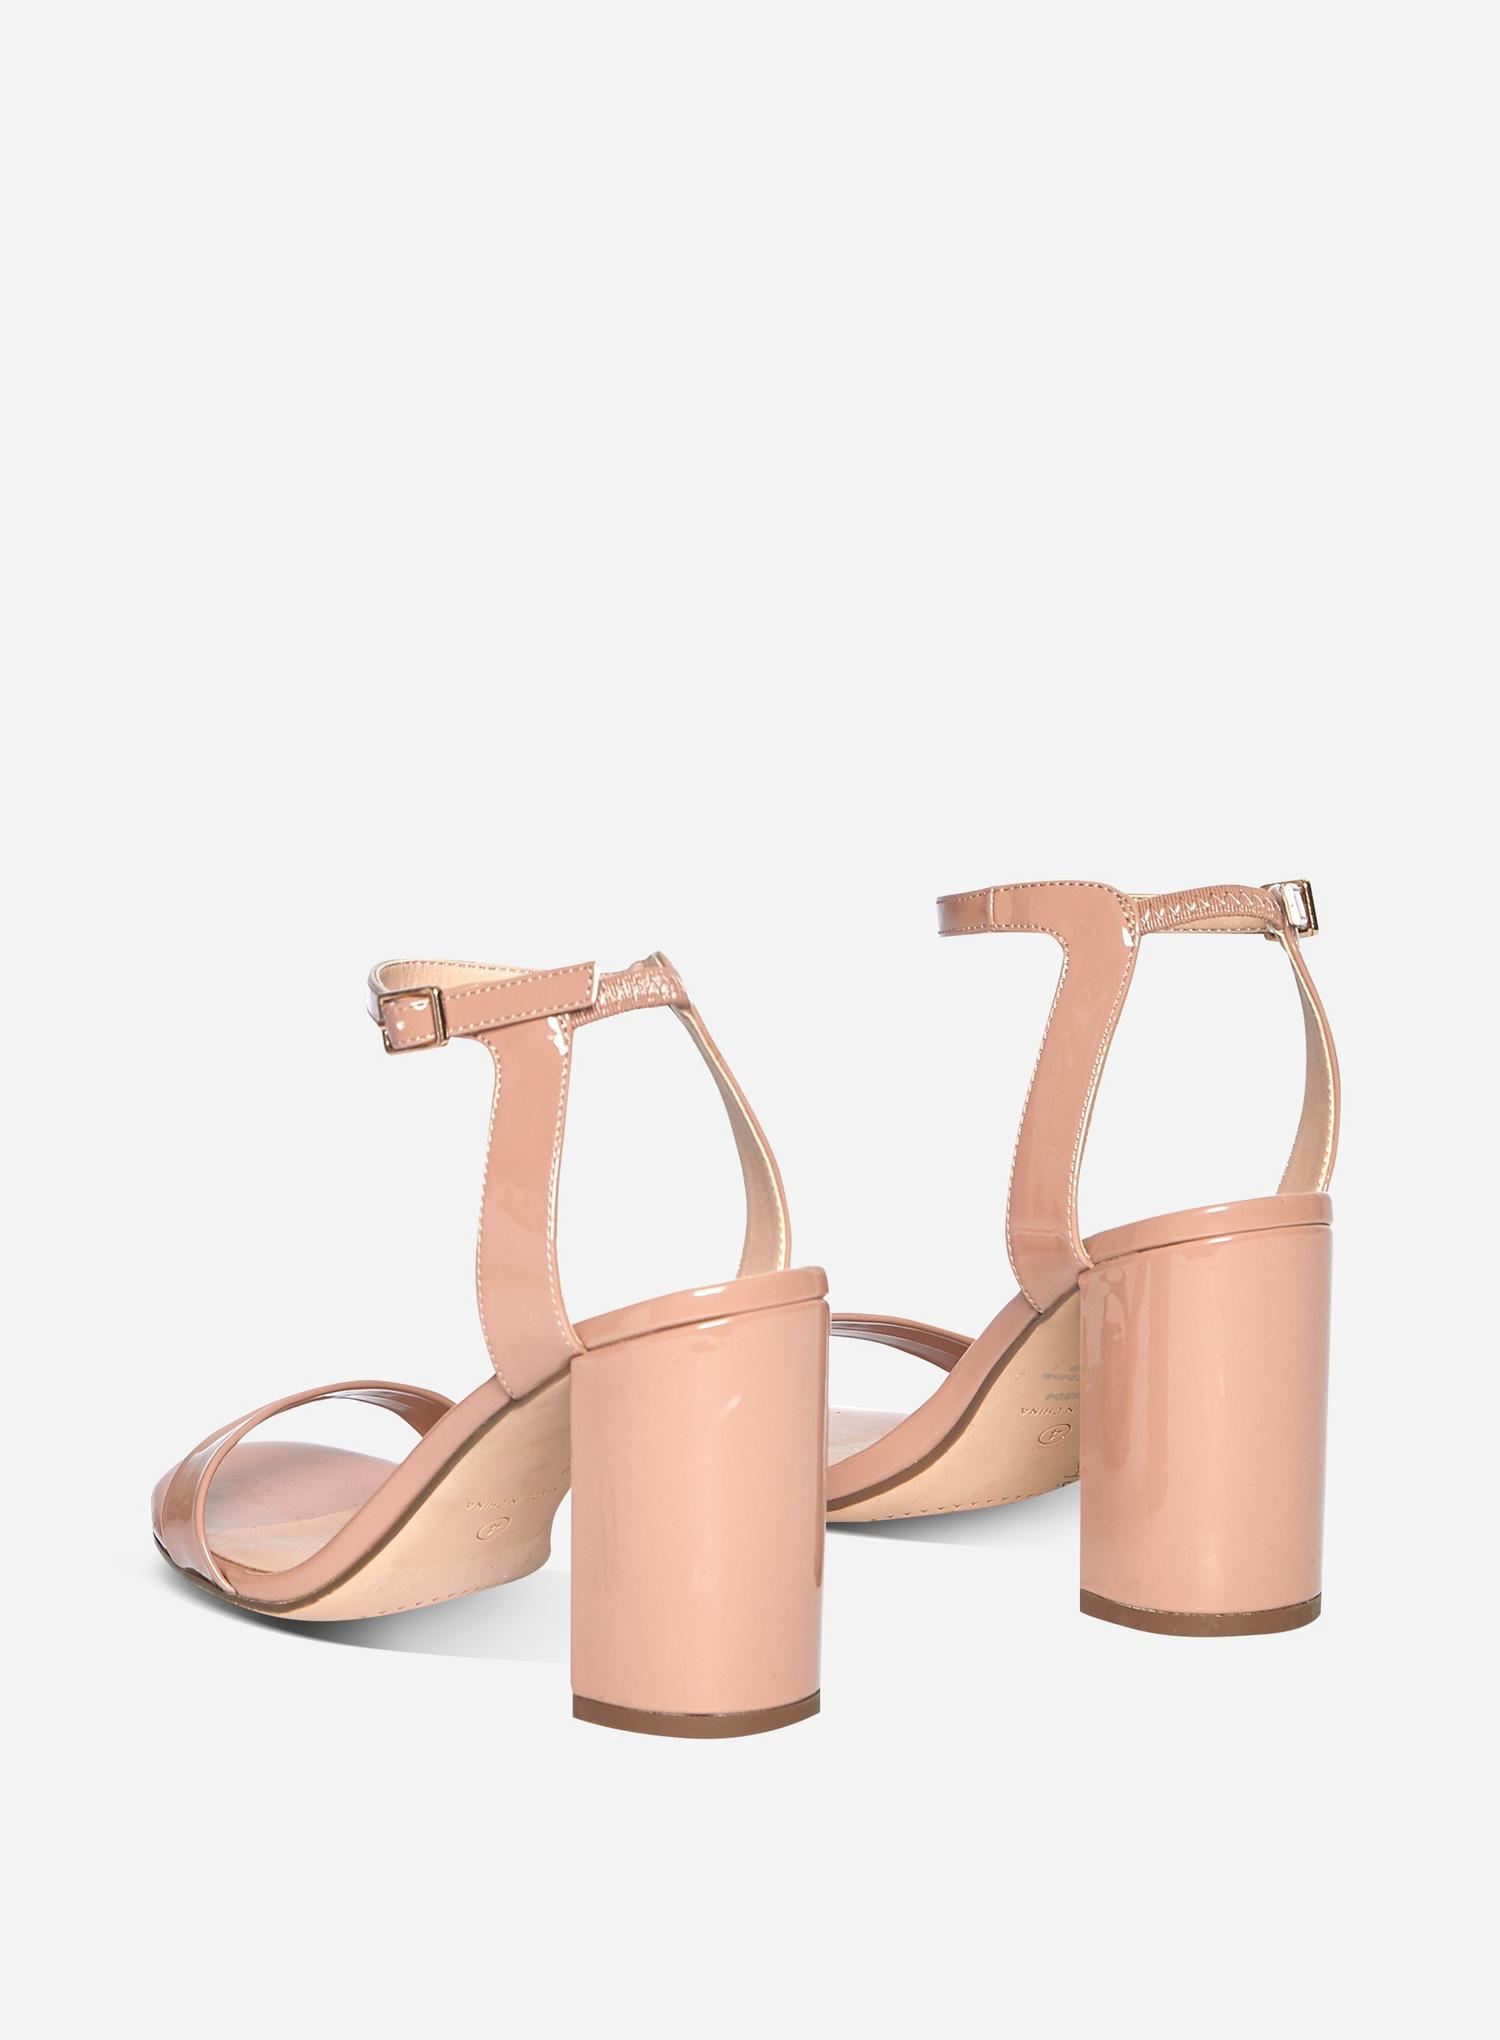 153 Blush Shimmer Two Part Heeled Sandals image number 2